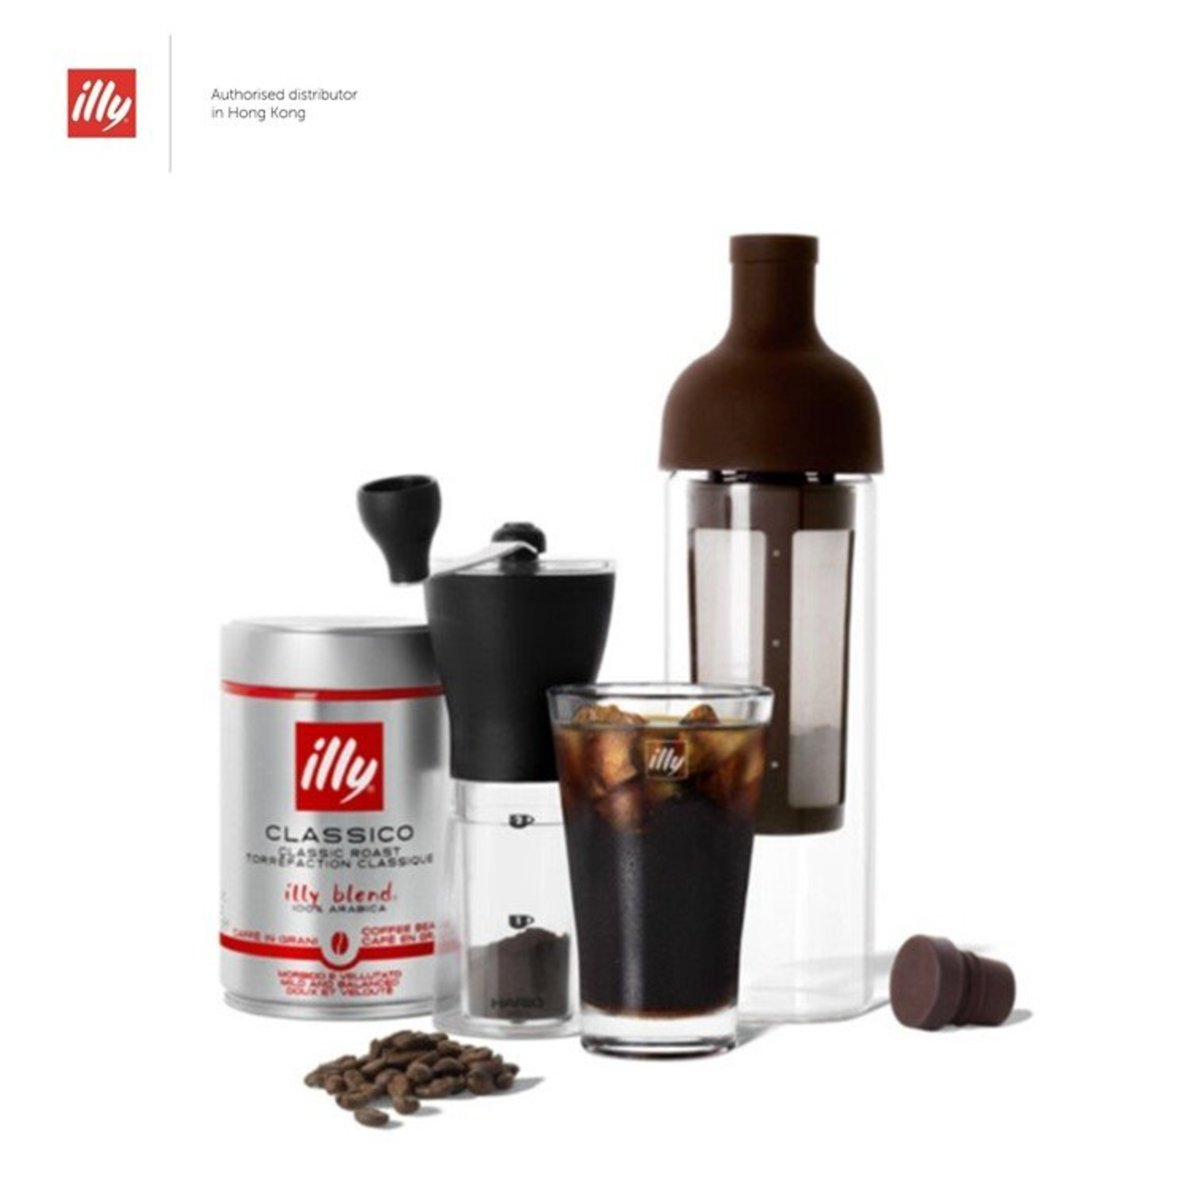 illy & Hario 冷萃咖啡家用套裝